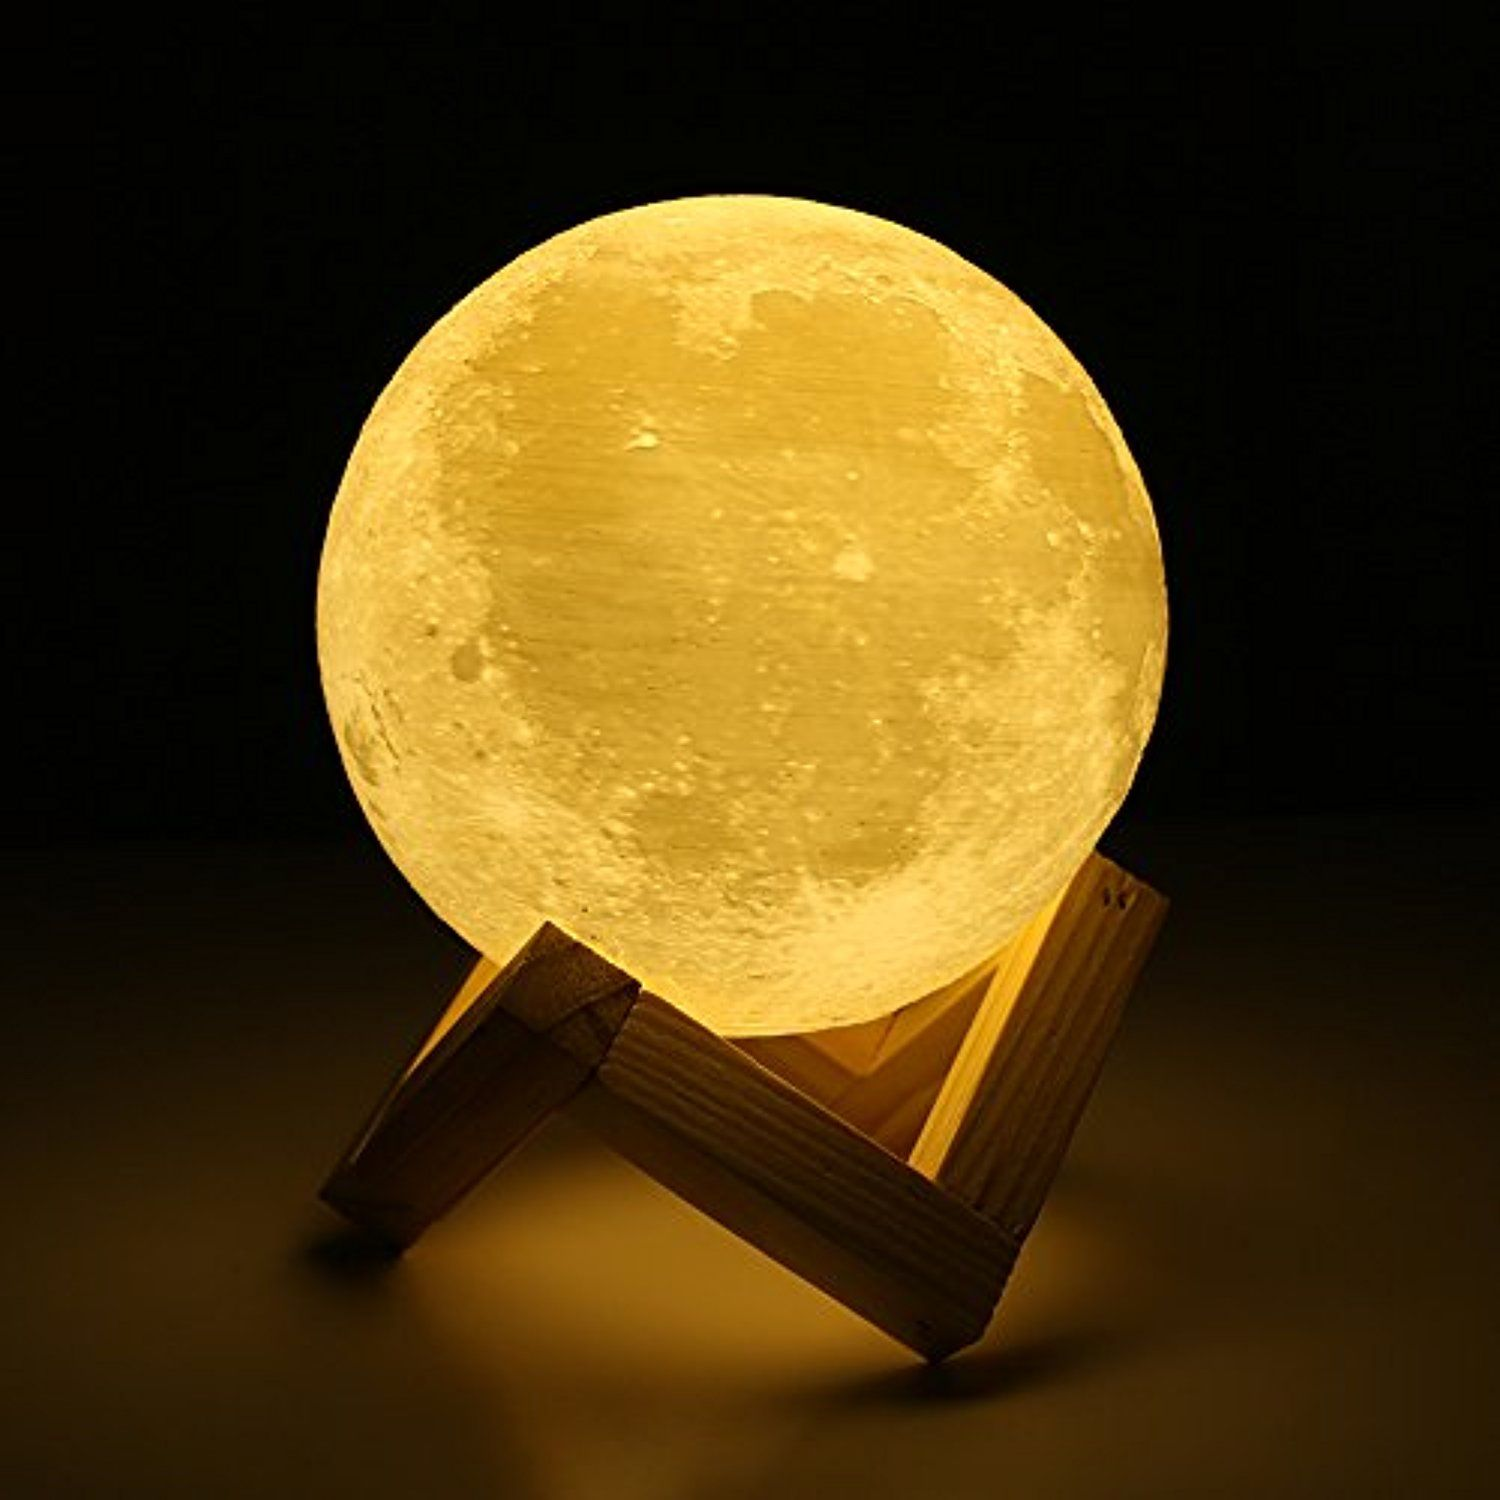 Moon Lamp Lampwin 5 9 Inch Usb Rechargeable Dimmable Led 3d Full Moon Light Lantern Touch Switch Warm Cool Led Night Lamp Night Light Lamp Moon Nightlight